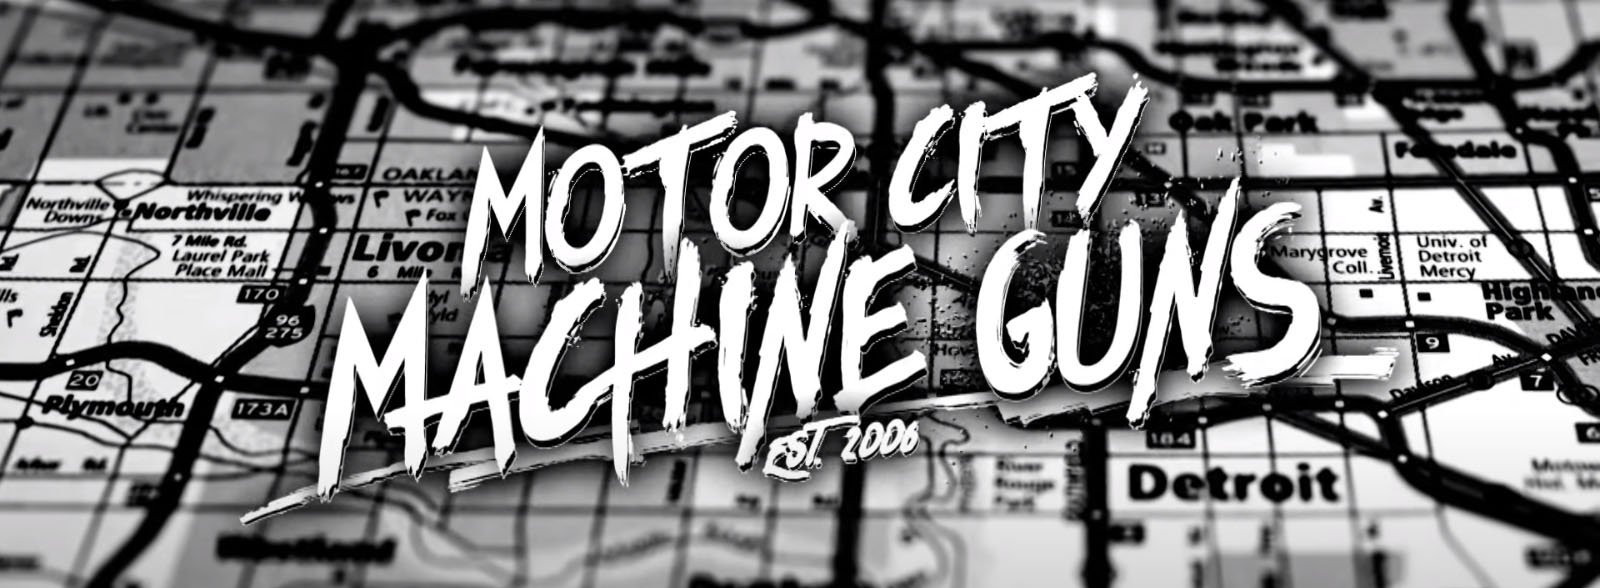 Motor City Machine Guns Font